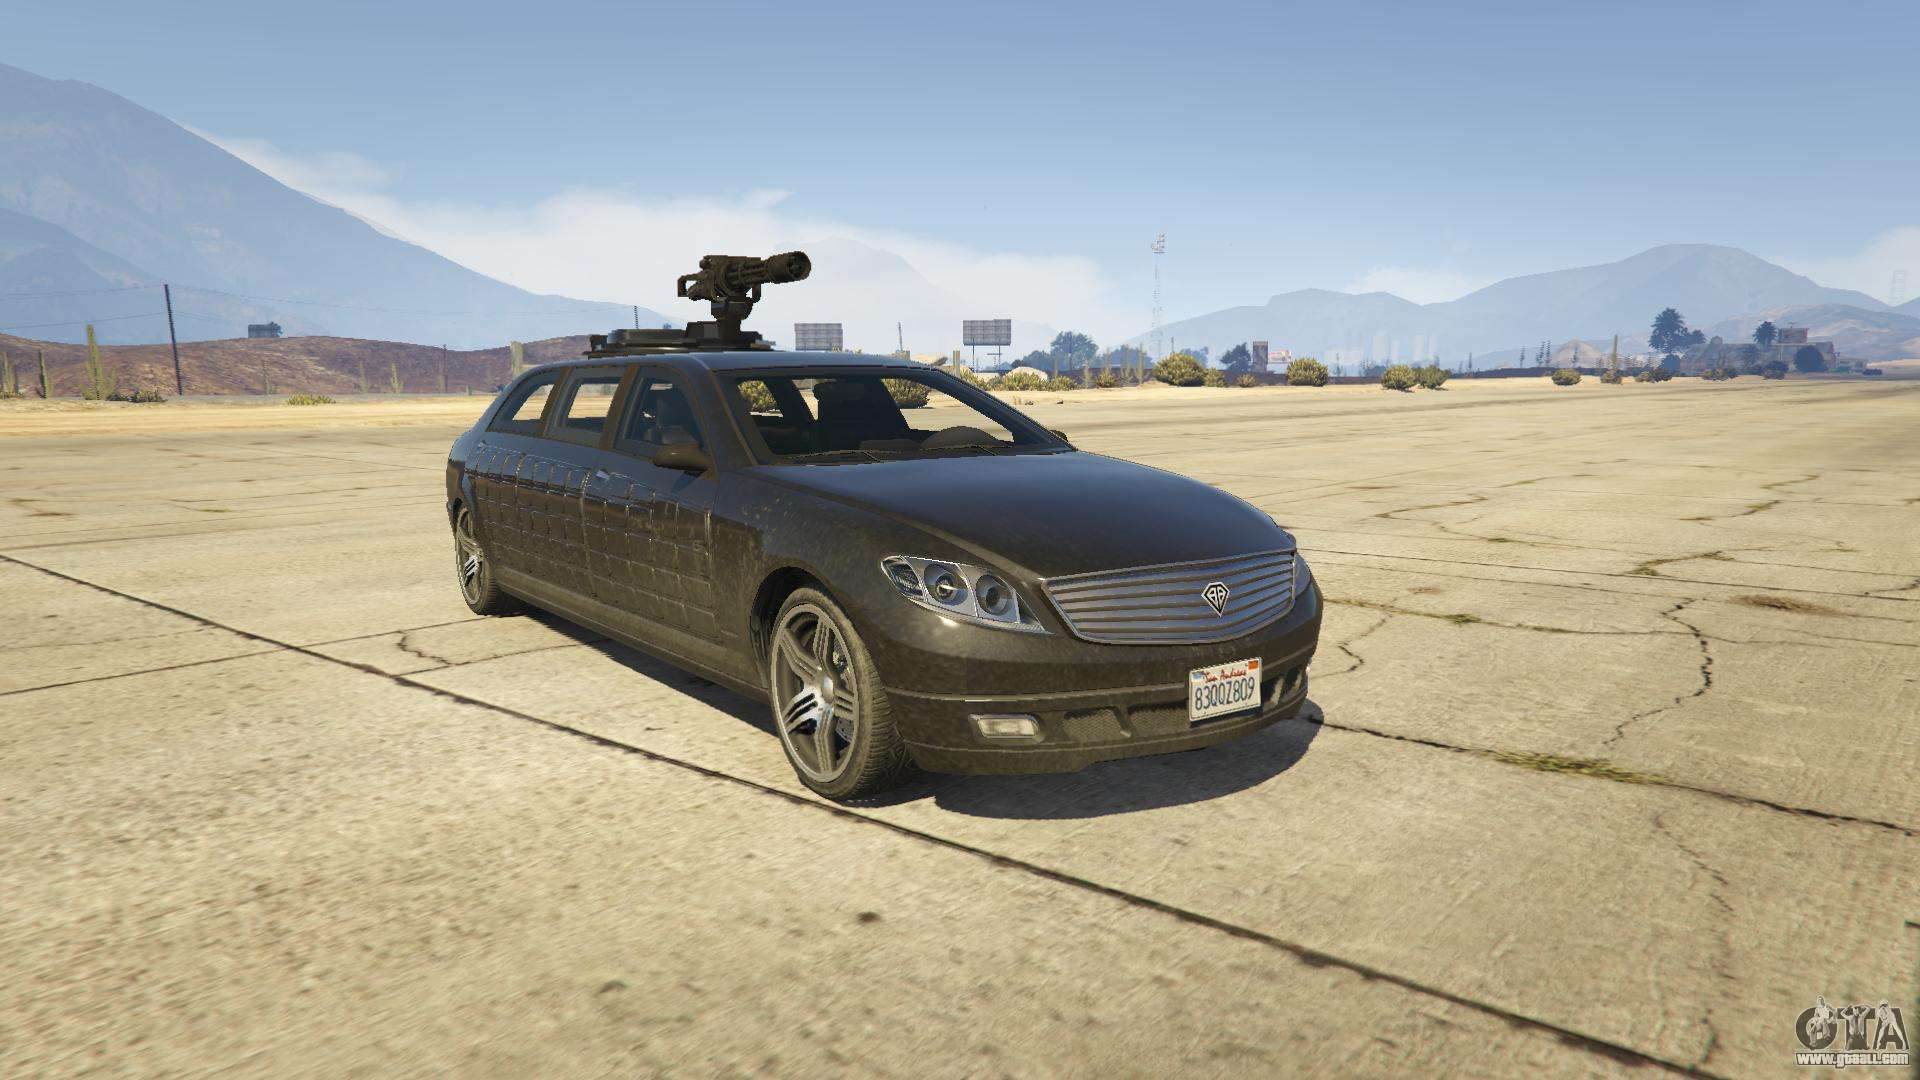 gta 5 helicopter cheat with 27844 Benefactor Turreted Limo on Details together with 25582 Gymkhana Mod in addition Language In Finland as well F2449 Nz Police Pack moreover Grandtheftauto5cheatscodes.